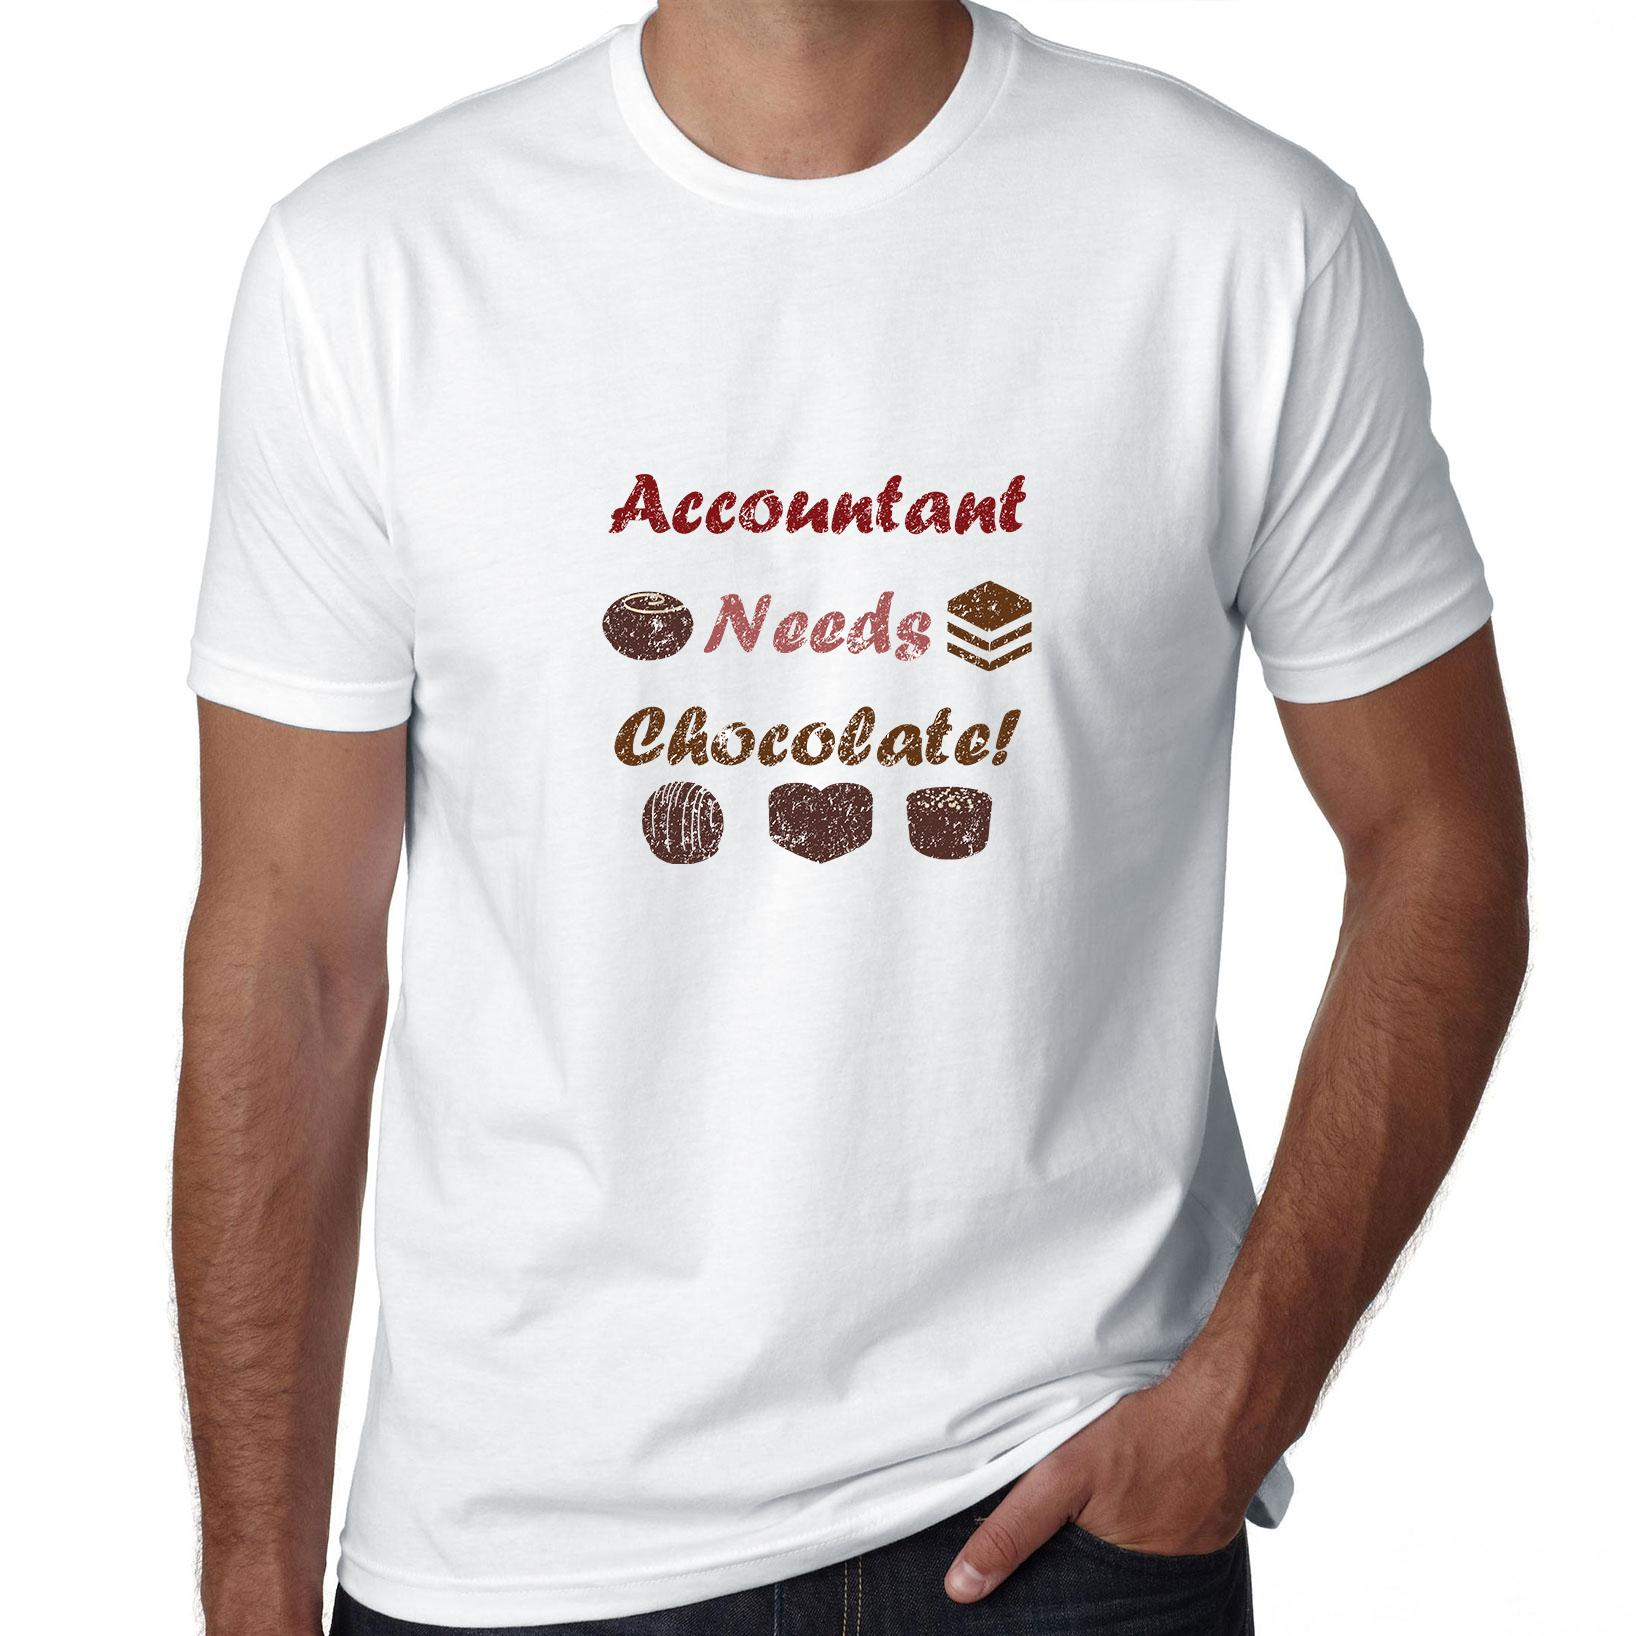 Accountant Needs Chocolate - Funny Graphic Men's T-Shirt